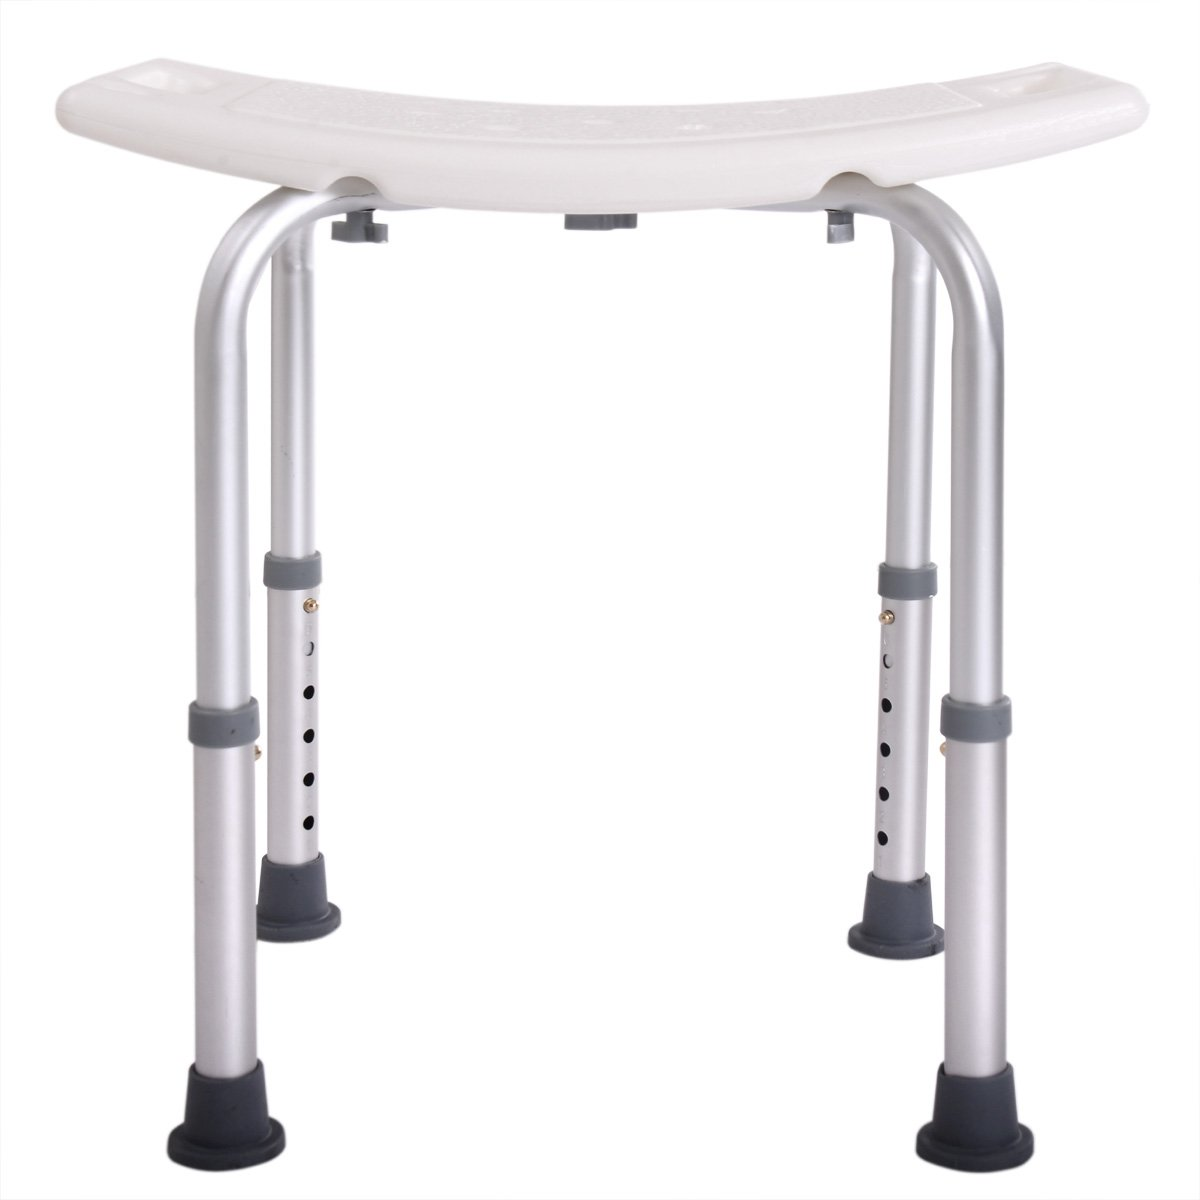 Tobbi Medical Tool-Free Assembly Adjustable Shower Stool Tub Chair W/Anti-Slip Rubber Tips by Tobbi (Image #3)